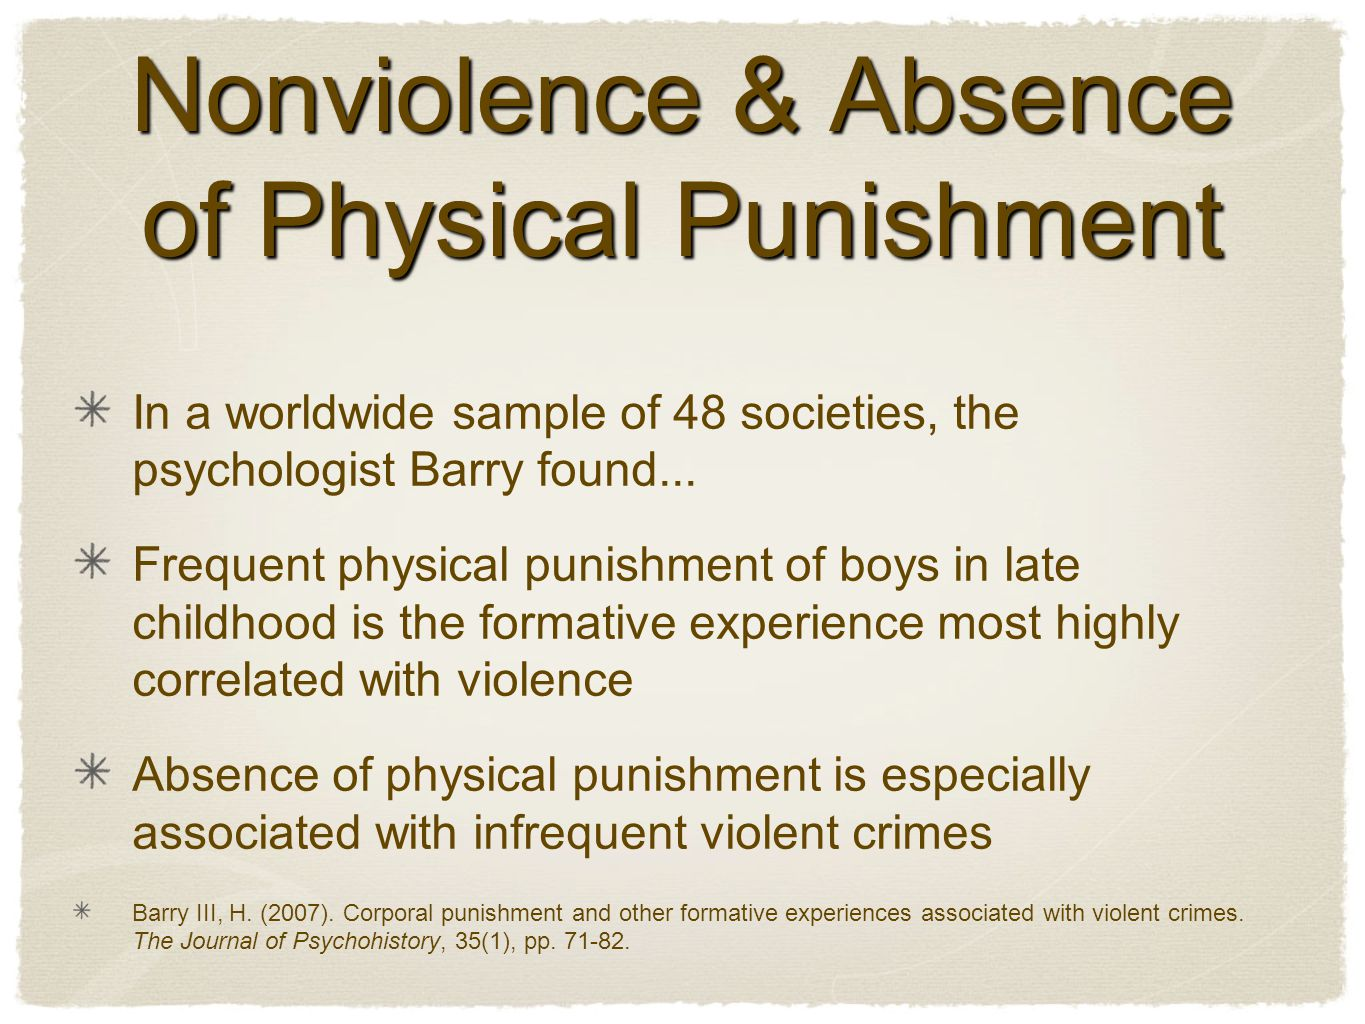 Nonviolence & Absence of Physical Punishment In a worldwide sample of 48 societies, the psychologist Barry found...